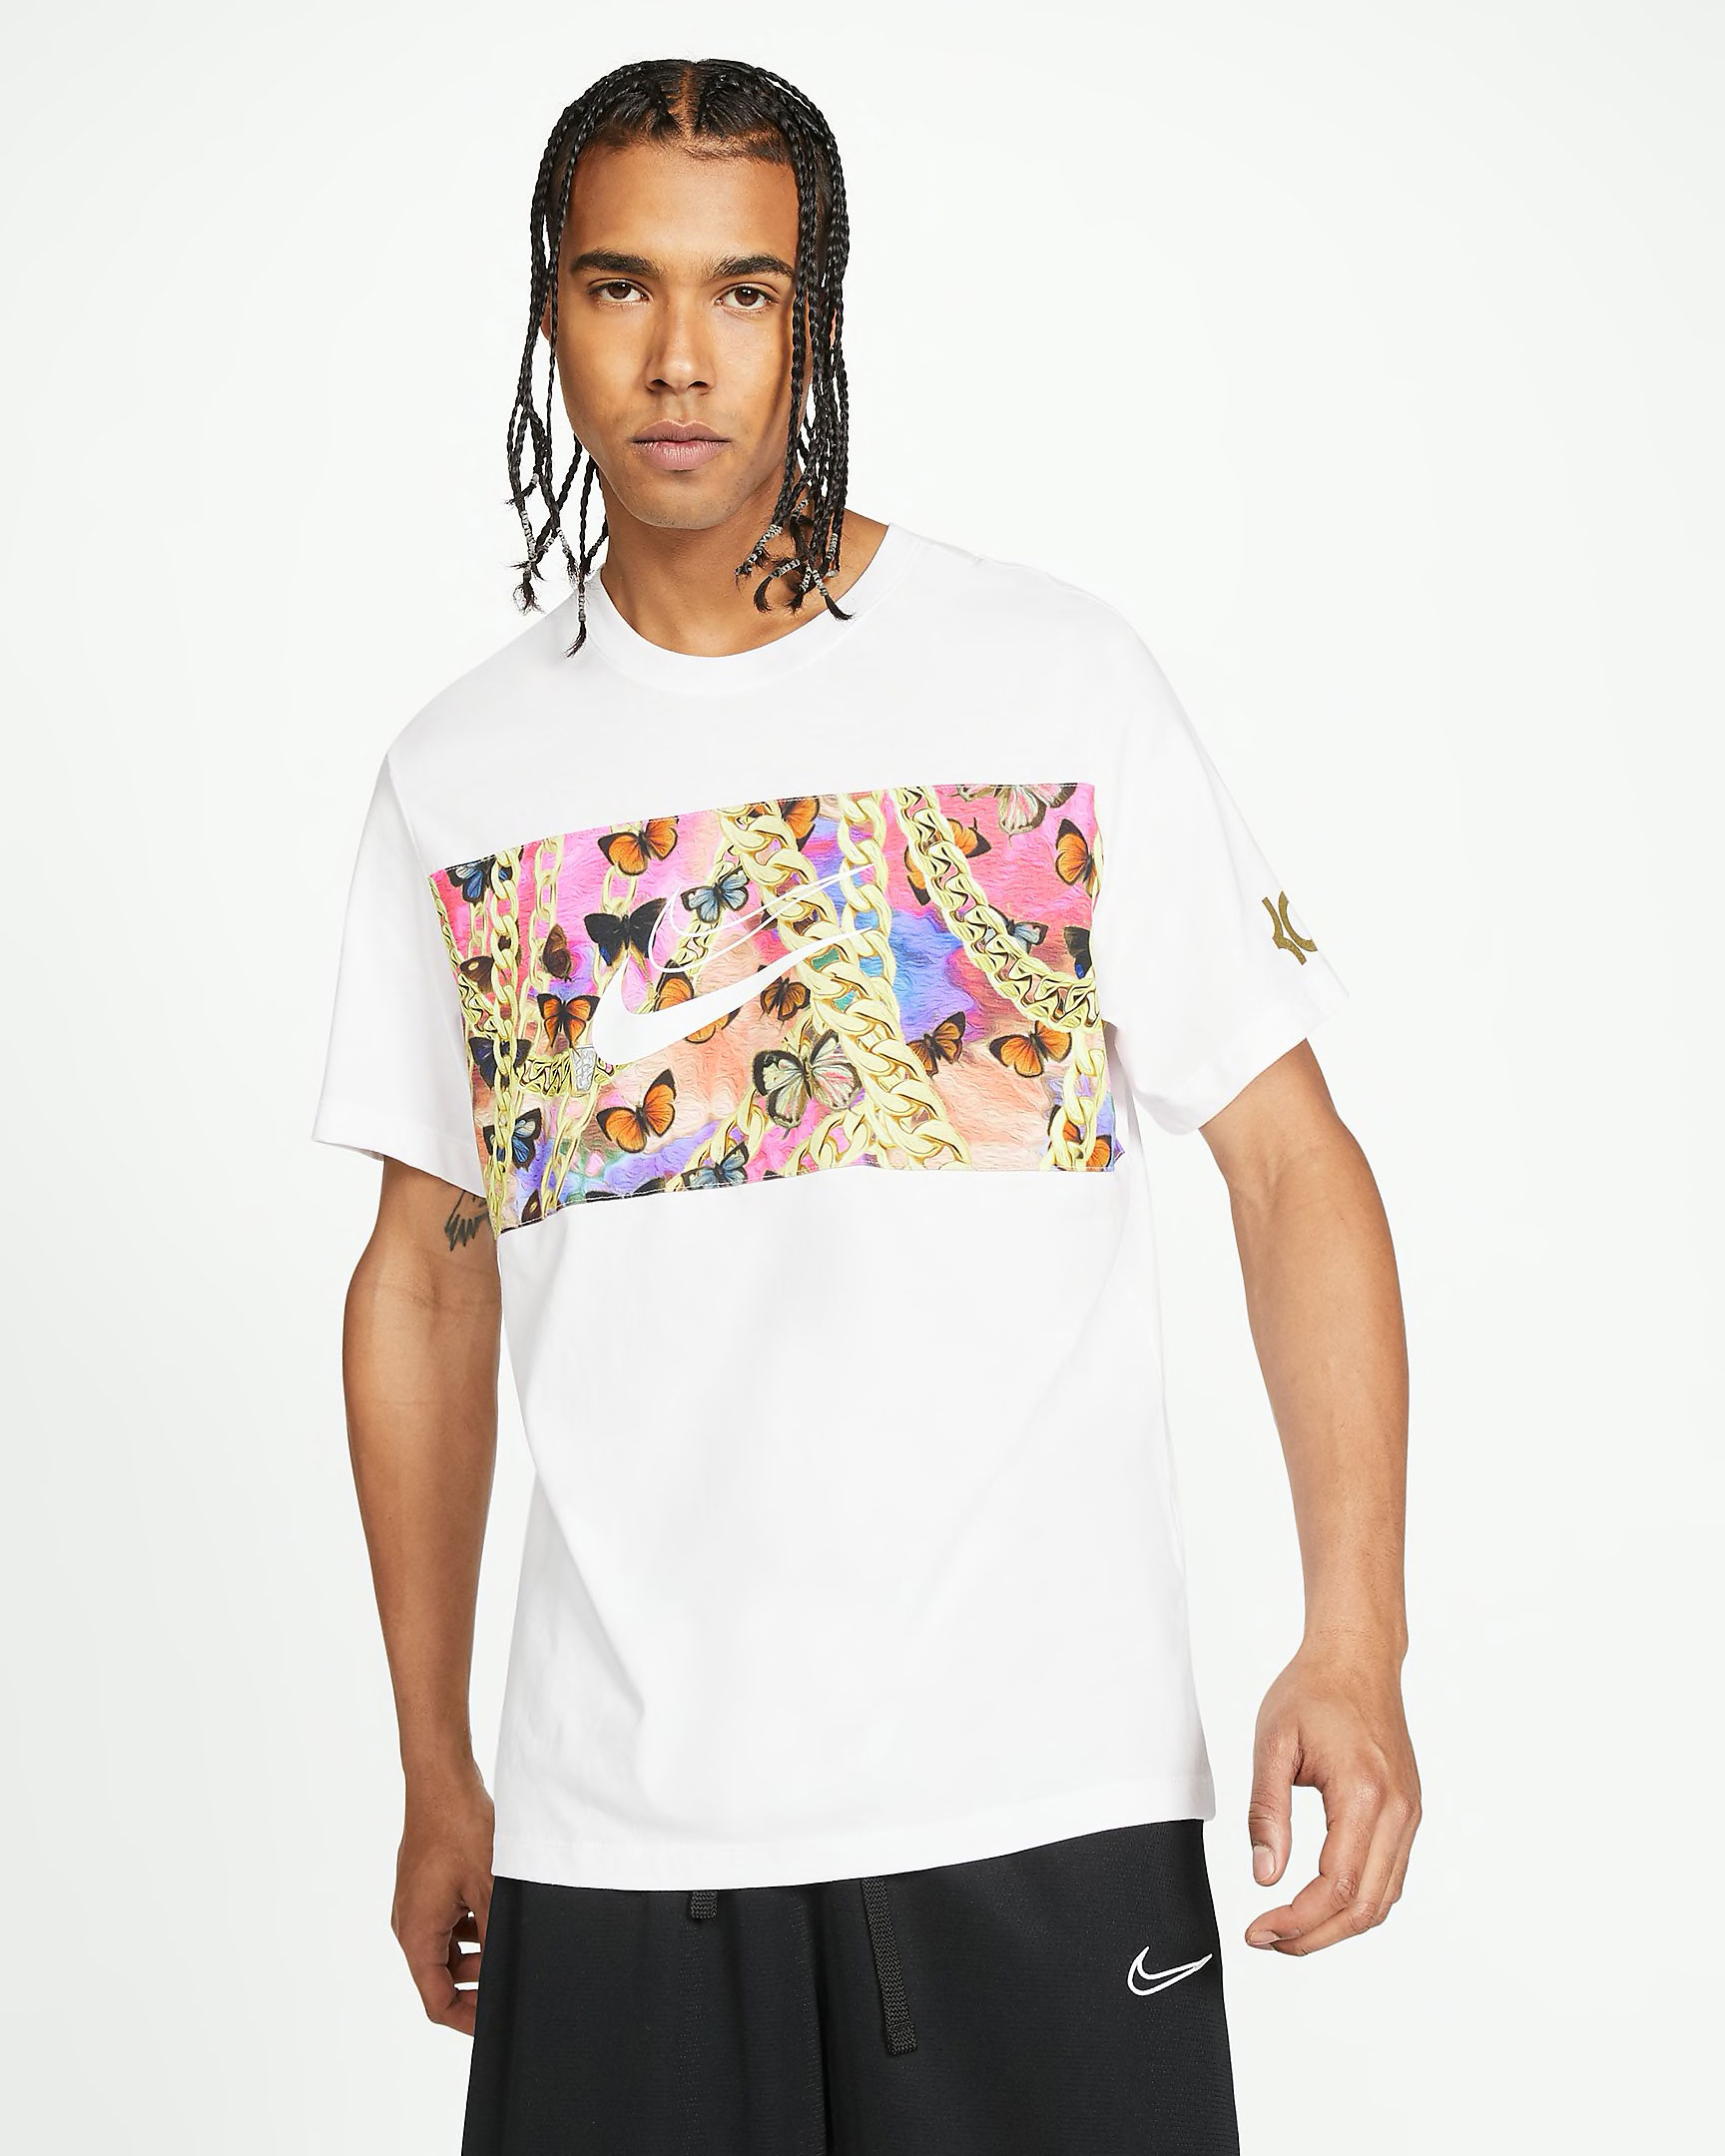 nike-kd-13-hype-butterflies-and-chains-shirt-2